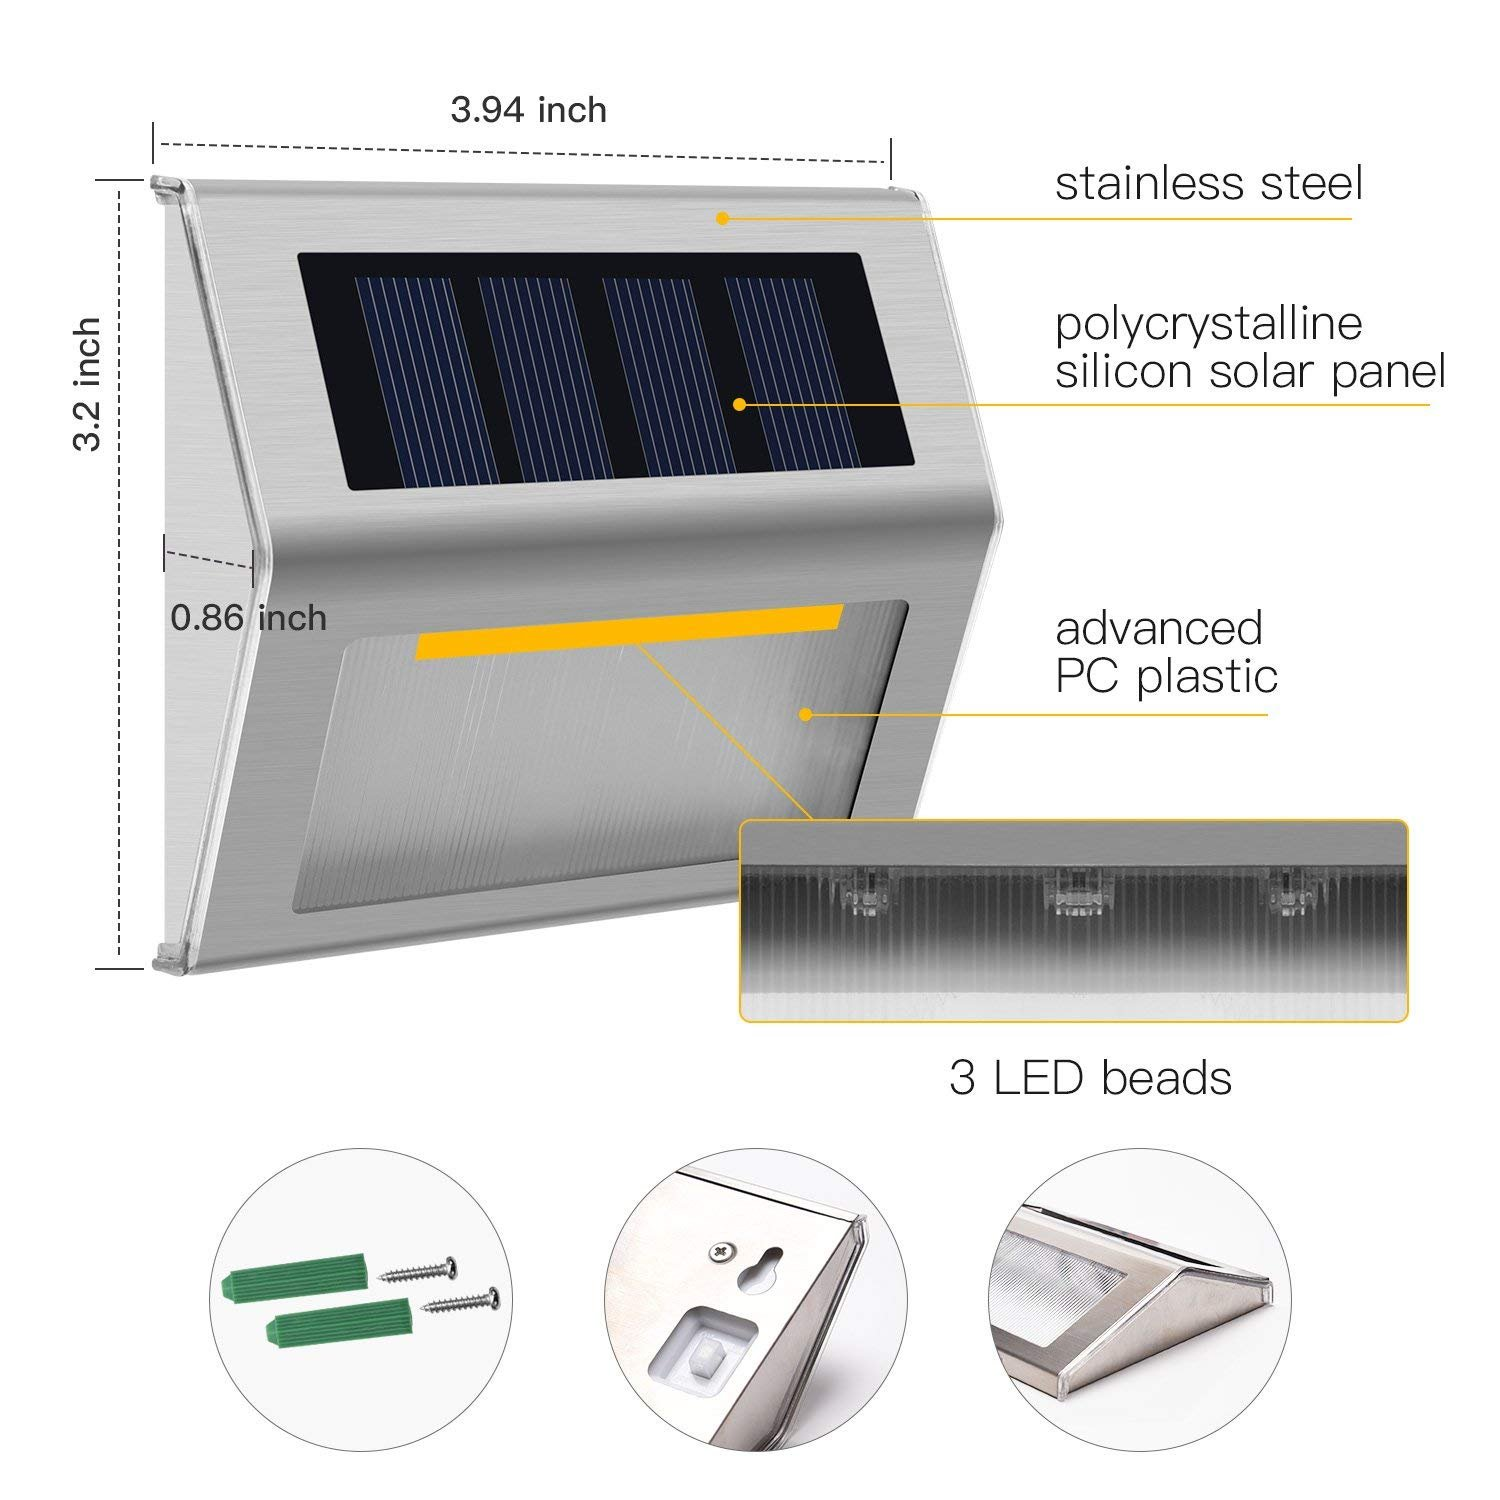 Solar Step Lights, Meio 8 Pack LED Solar Powered Super Bright Weatherproof Outdoor Lighting for Steps Stairs Paths Patio Decks